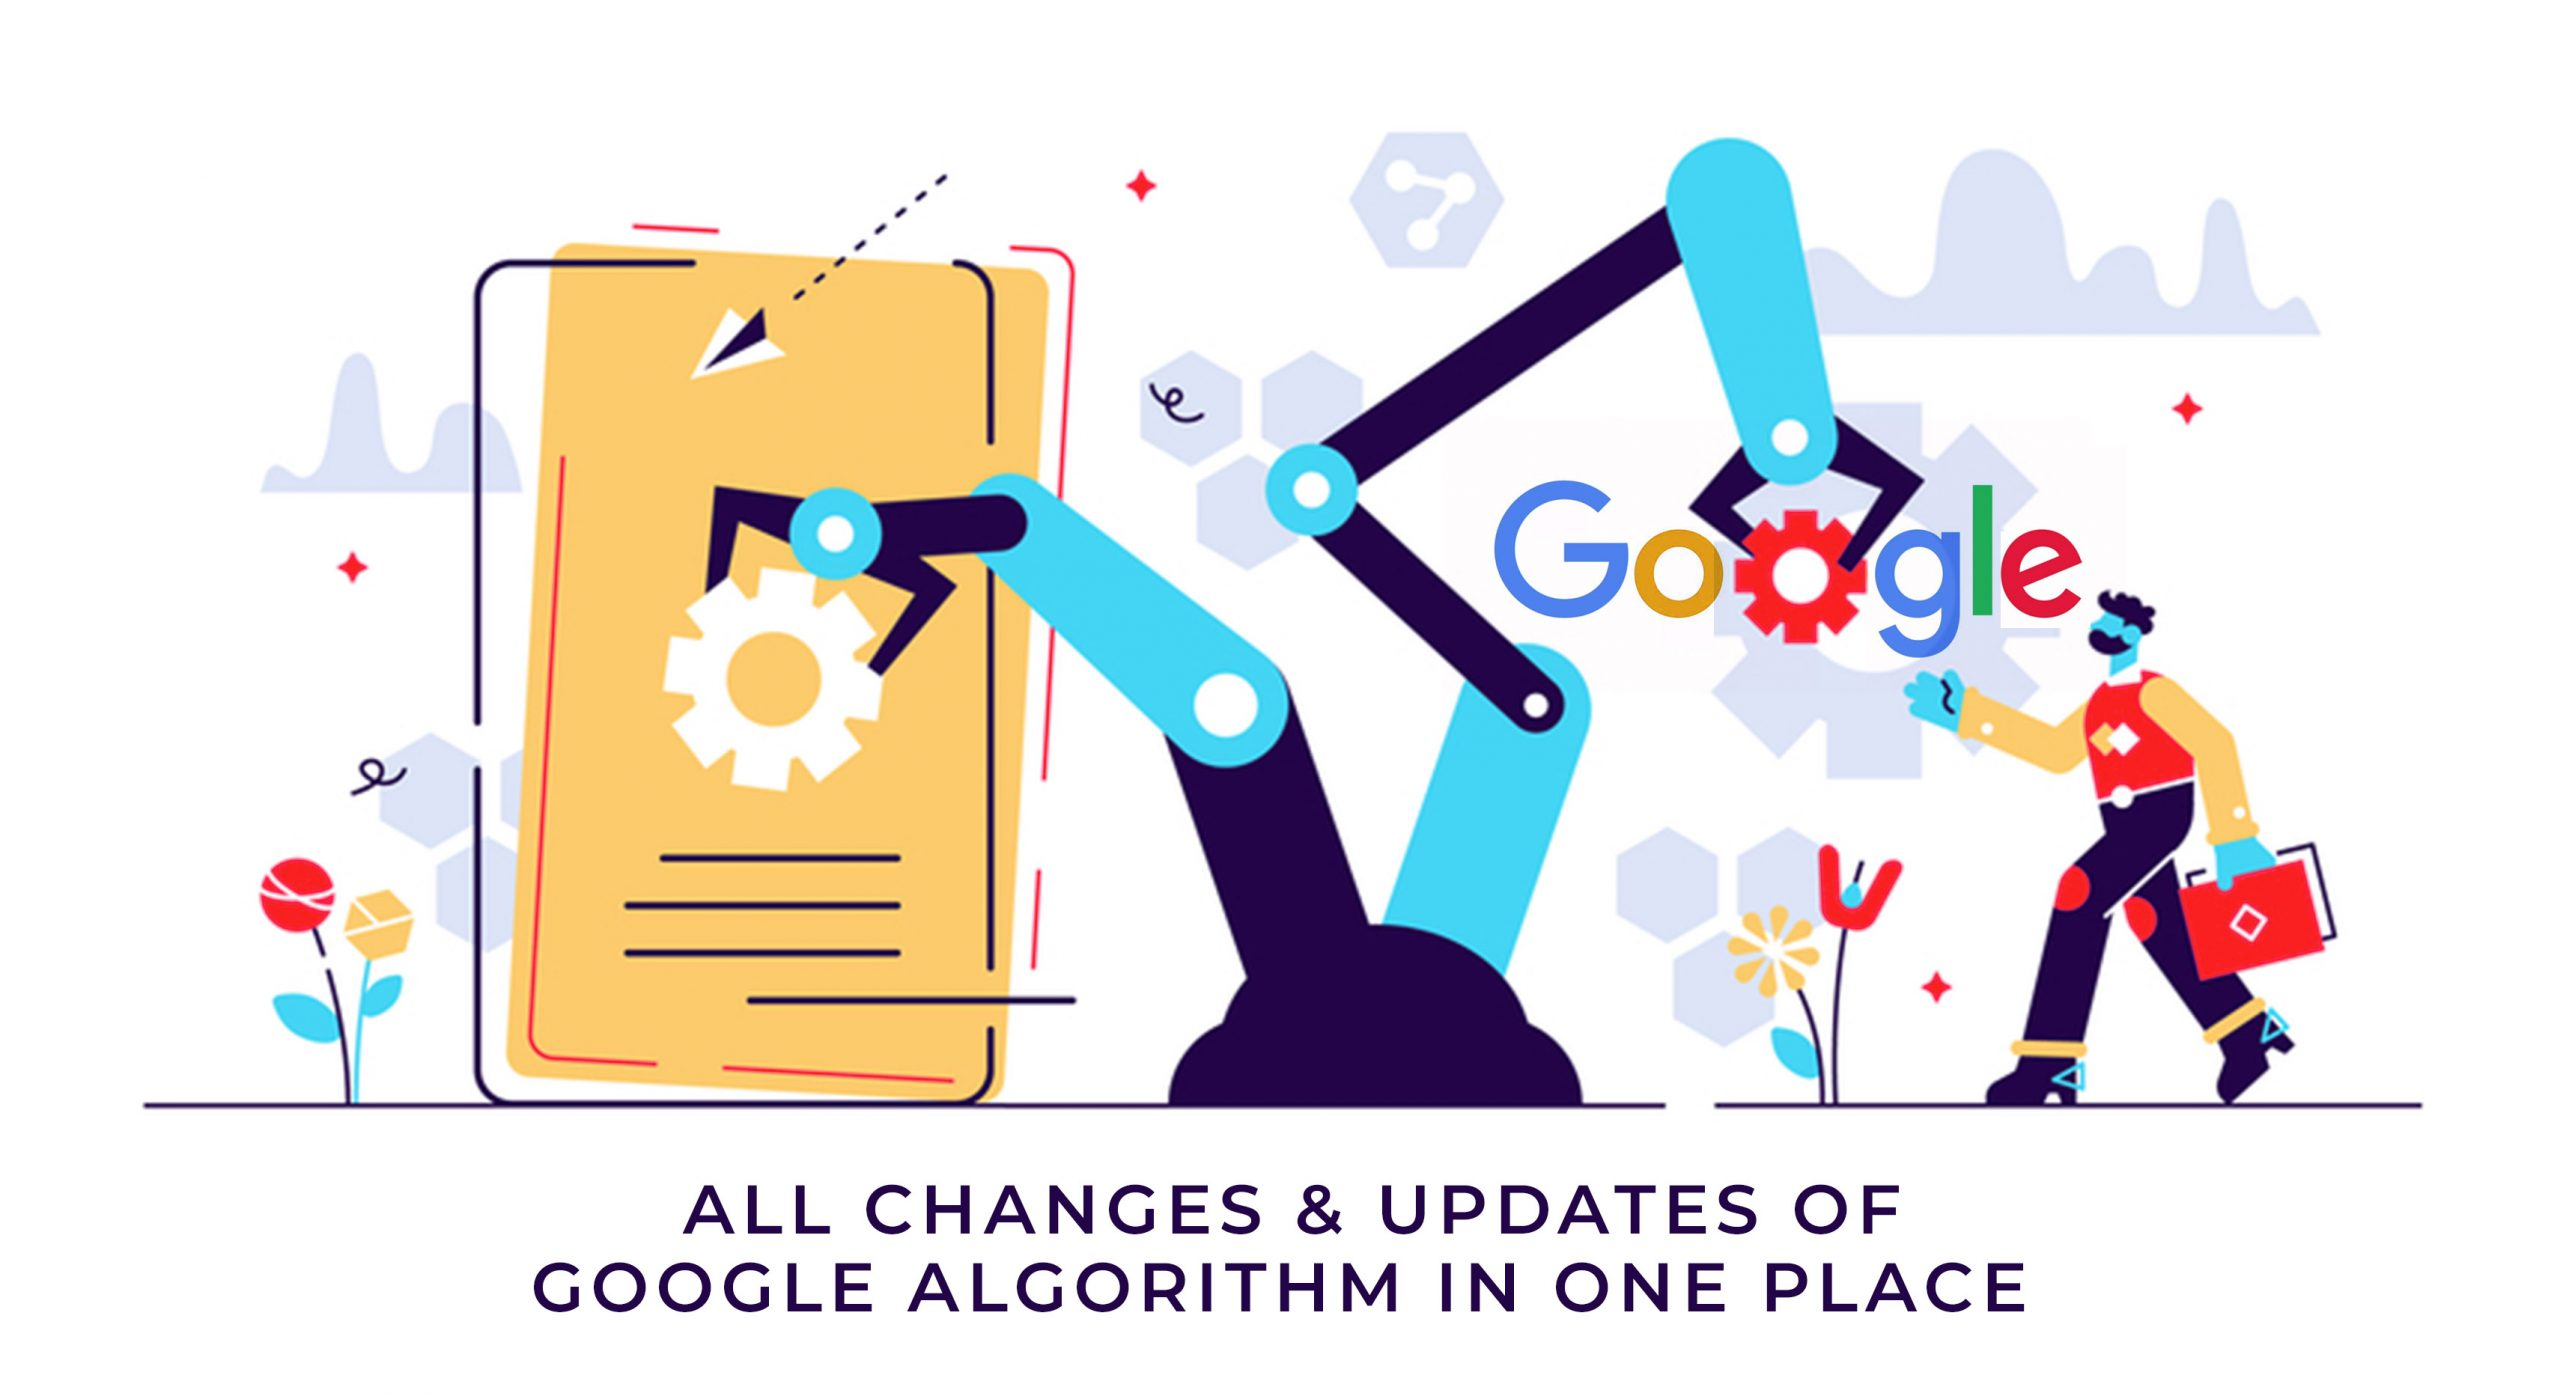 All Changes & Updates Of Google Algorithm In One Place